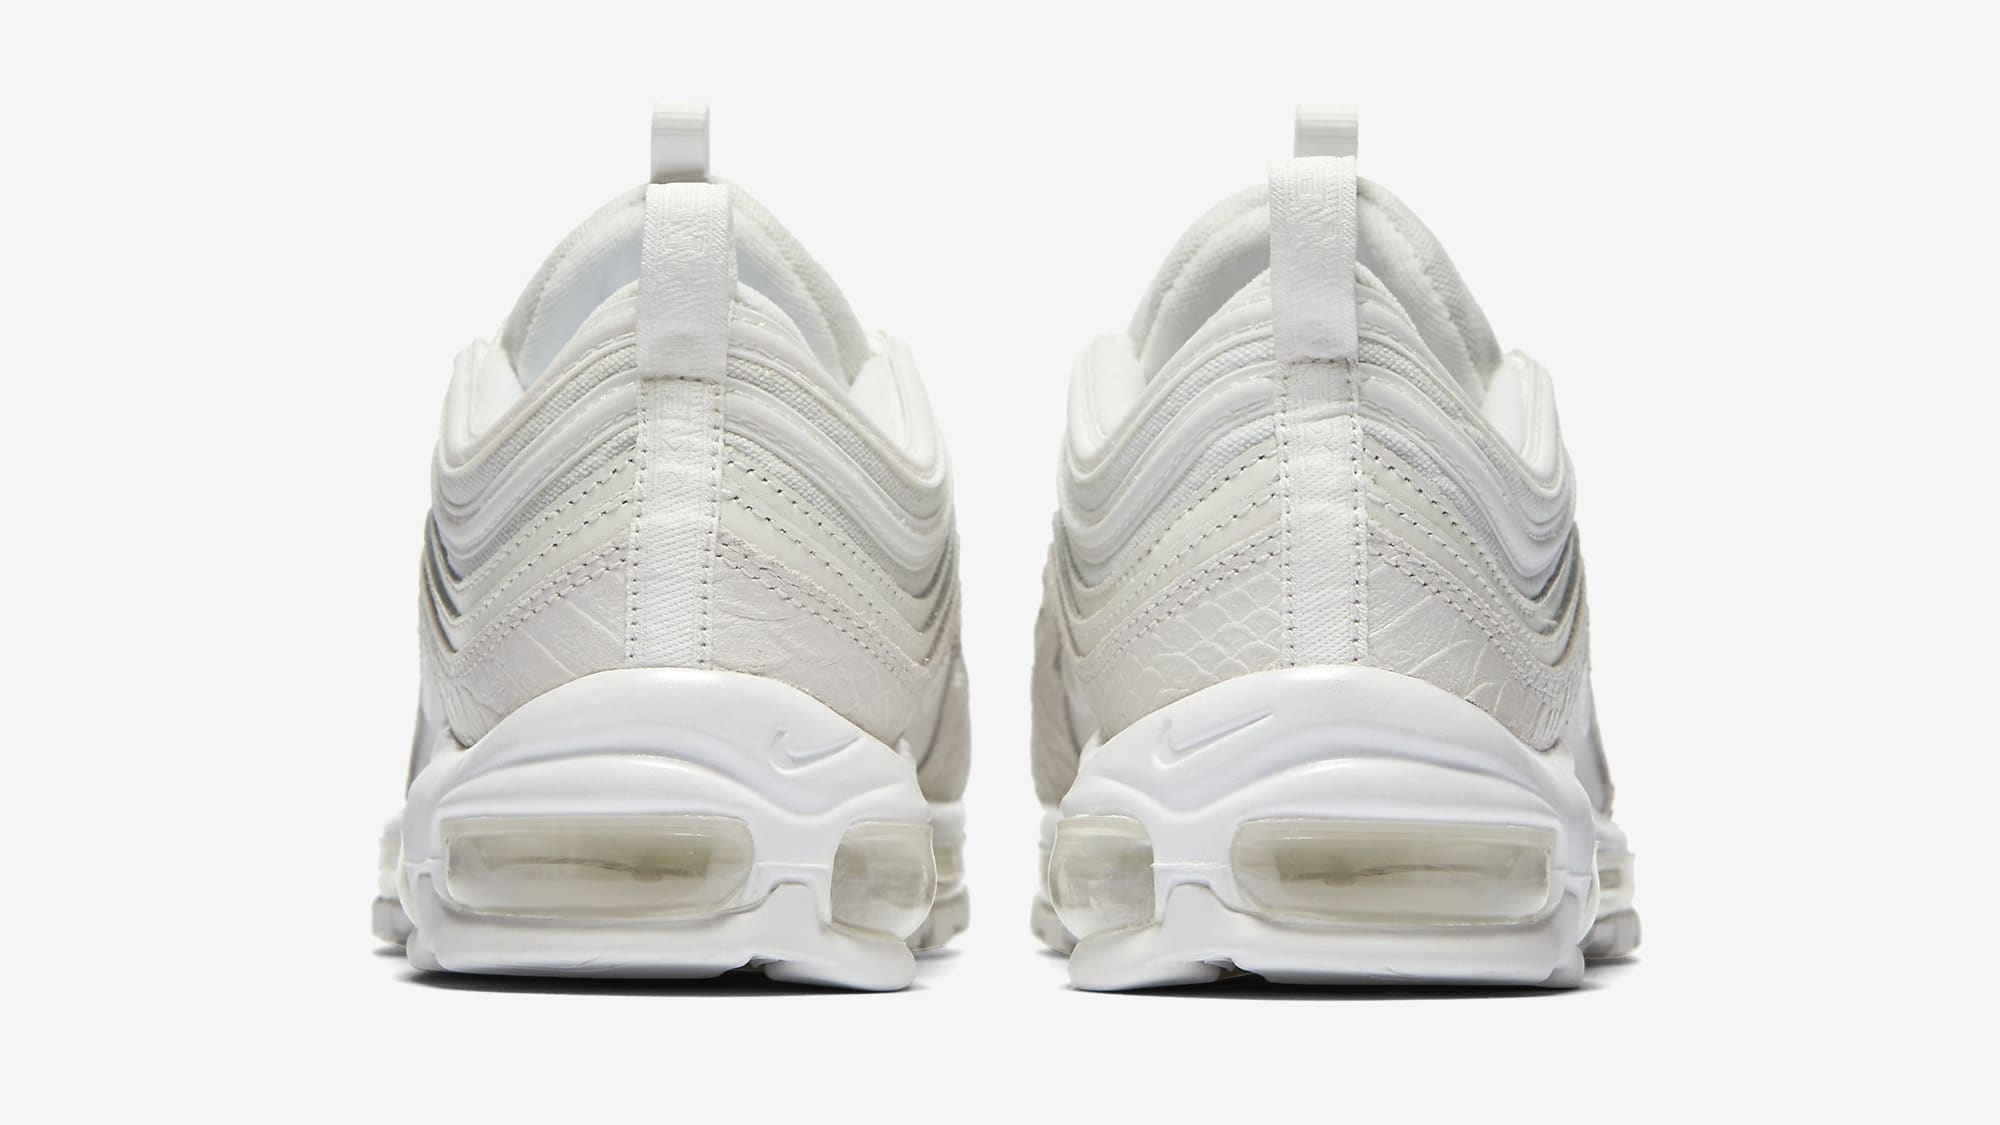 The Nike Air Max 97 Is Releasing In A White Snakeskin Colorway